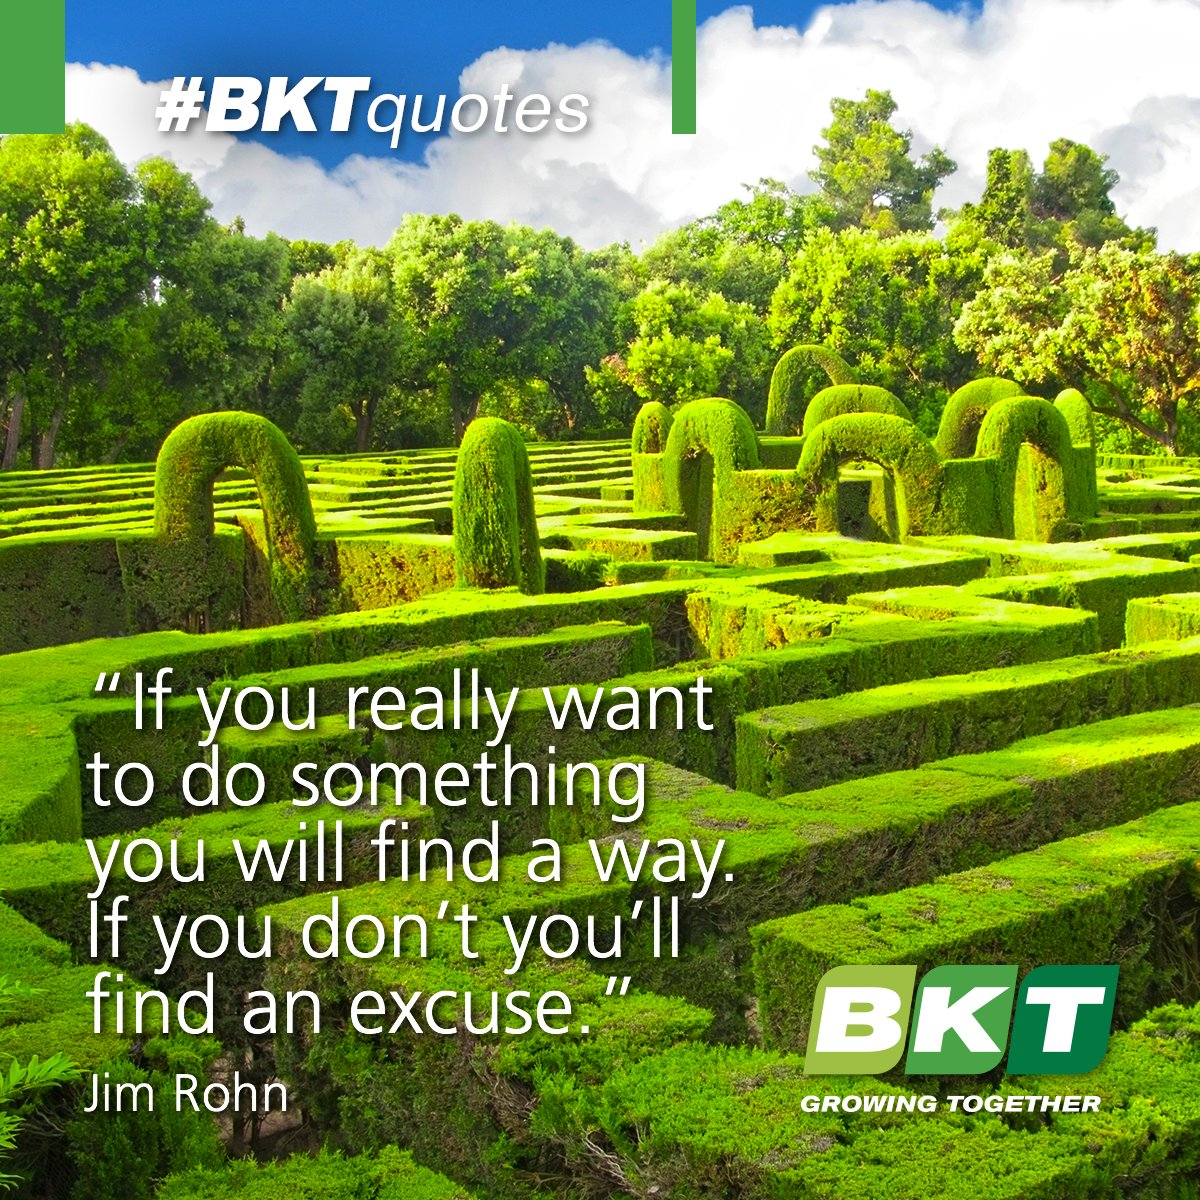 At BKT we think nothing's impossible. If you don't try you'll never know! #BKTquotes #quote https://t.co/l3KNIuNj0C